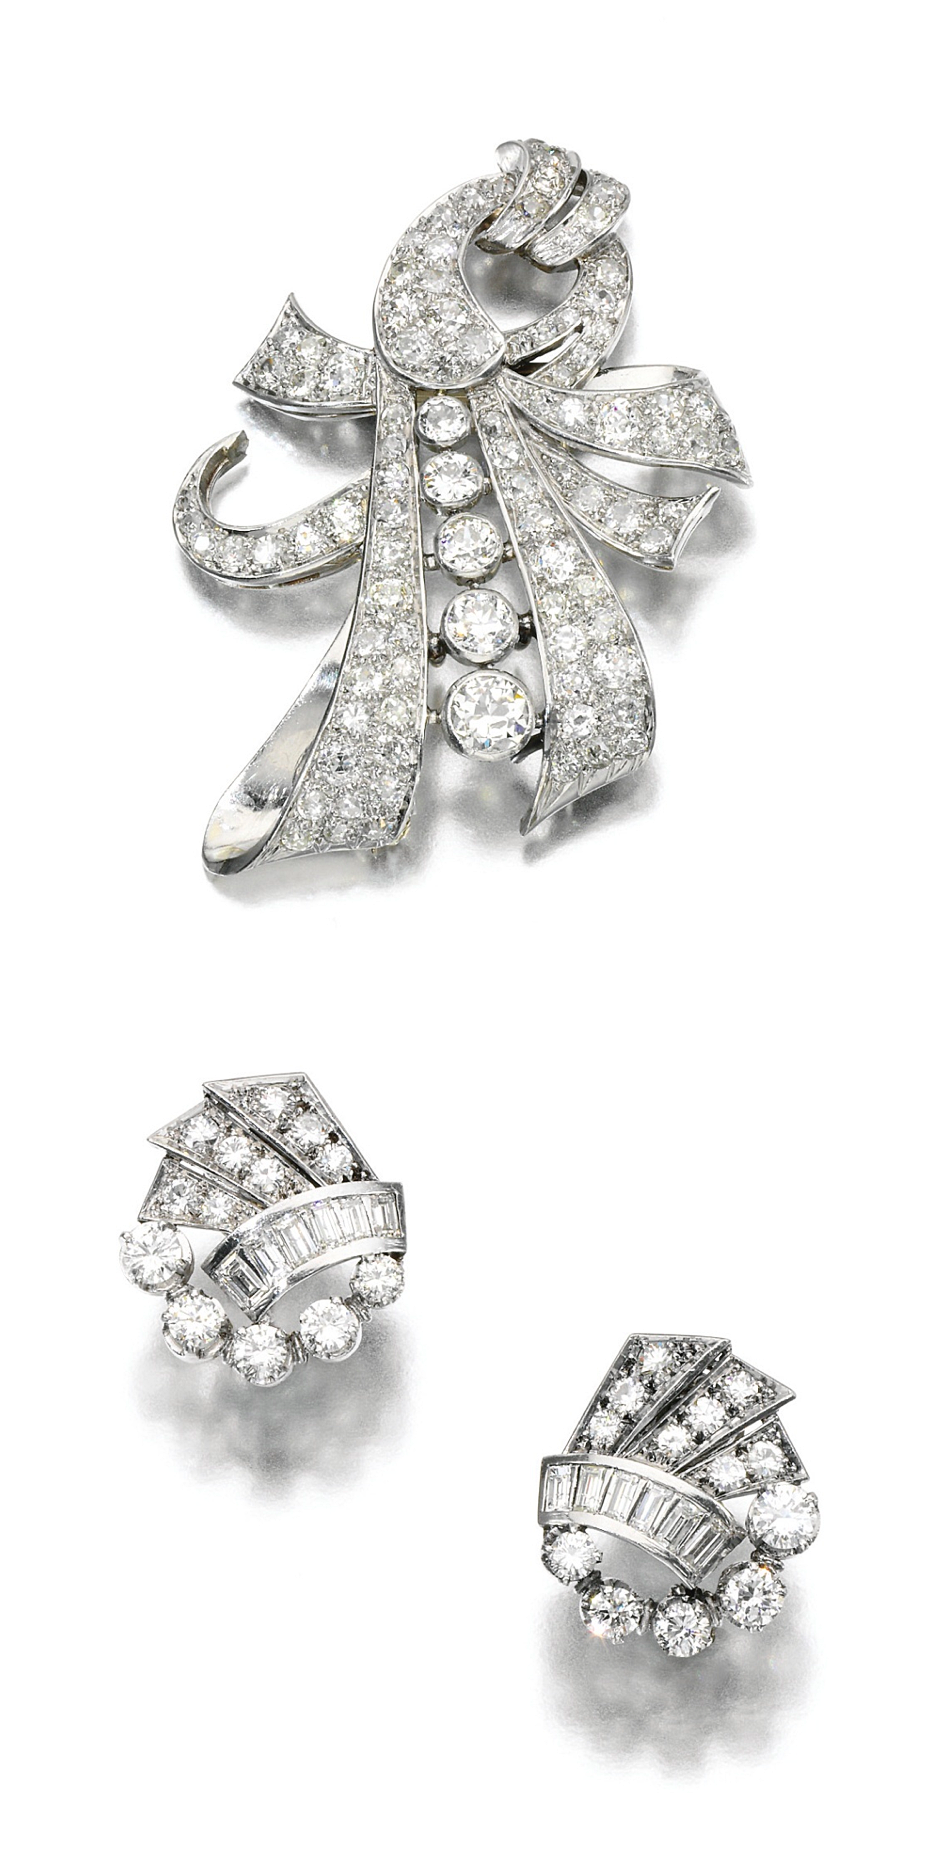 DIAMOND BROOCH AND PAIR OF EAR CLIPS, 1930S.  The brooch of open work ribbon scroll design set with circular- and single-cut diamonds and a pair of diamond ear clips of similar design set with circular-cut and baguette diamonds, French assay marks.